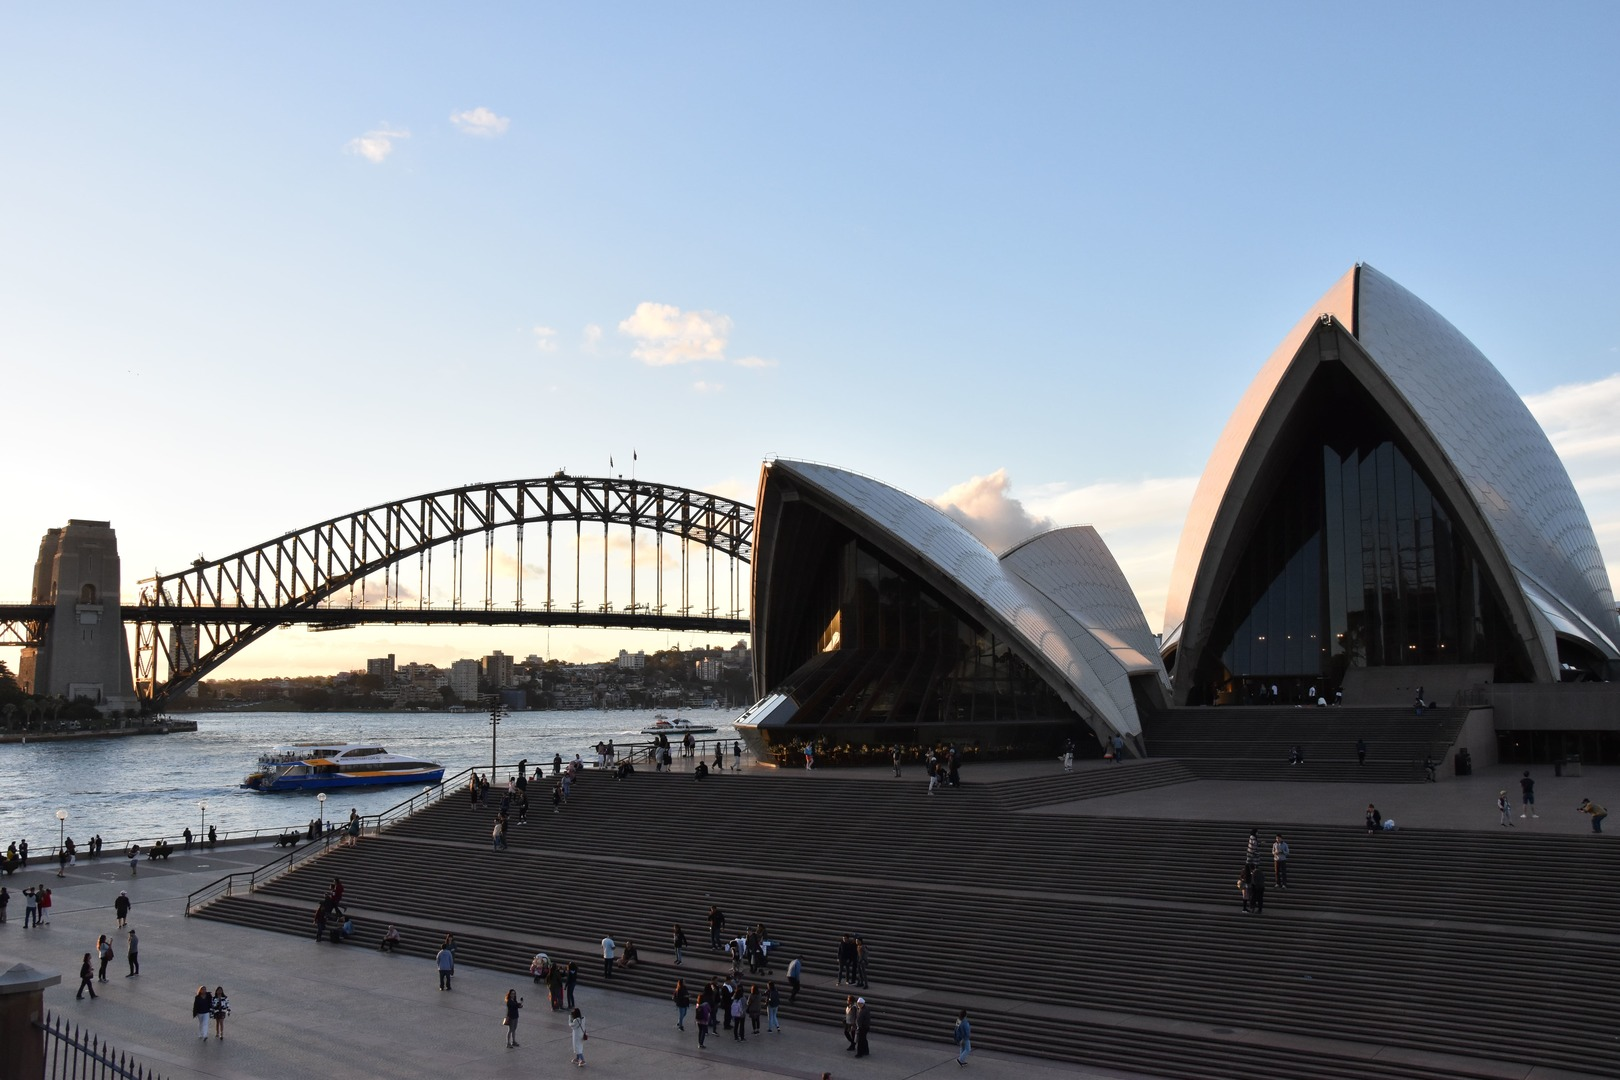 The Opera House and the Harbour Bridge in Sydney